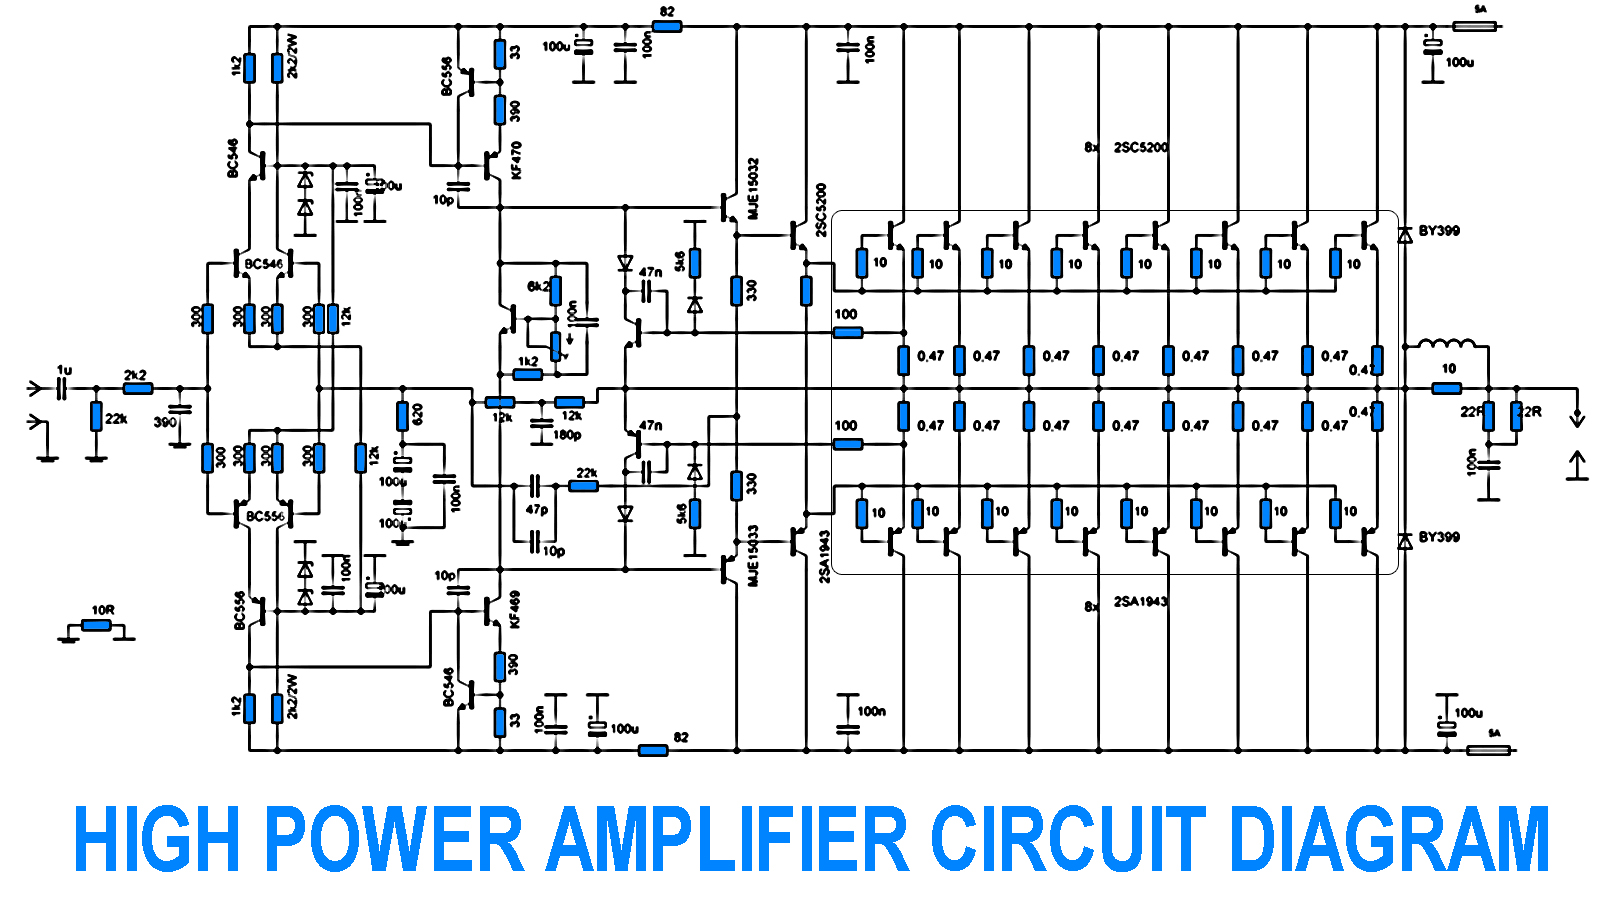 small resolution of 2sc5200 2sa1943 amplifier circuit 700w power amplifier with 2sc5200 2sa1943 2sc5200 2sa1943 amplifier circuit